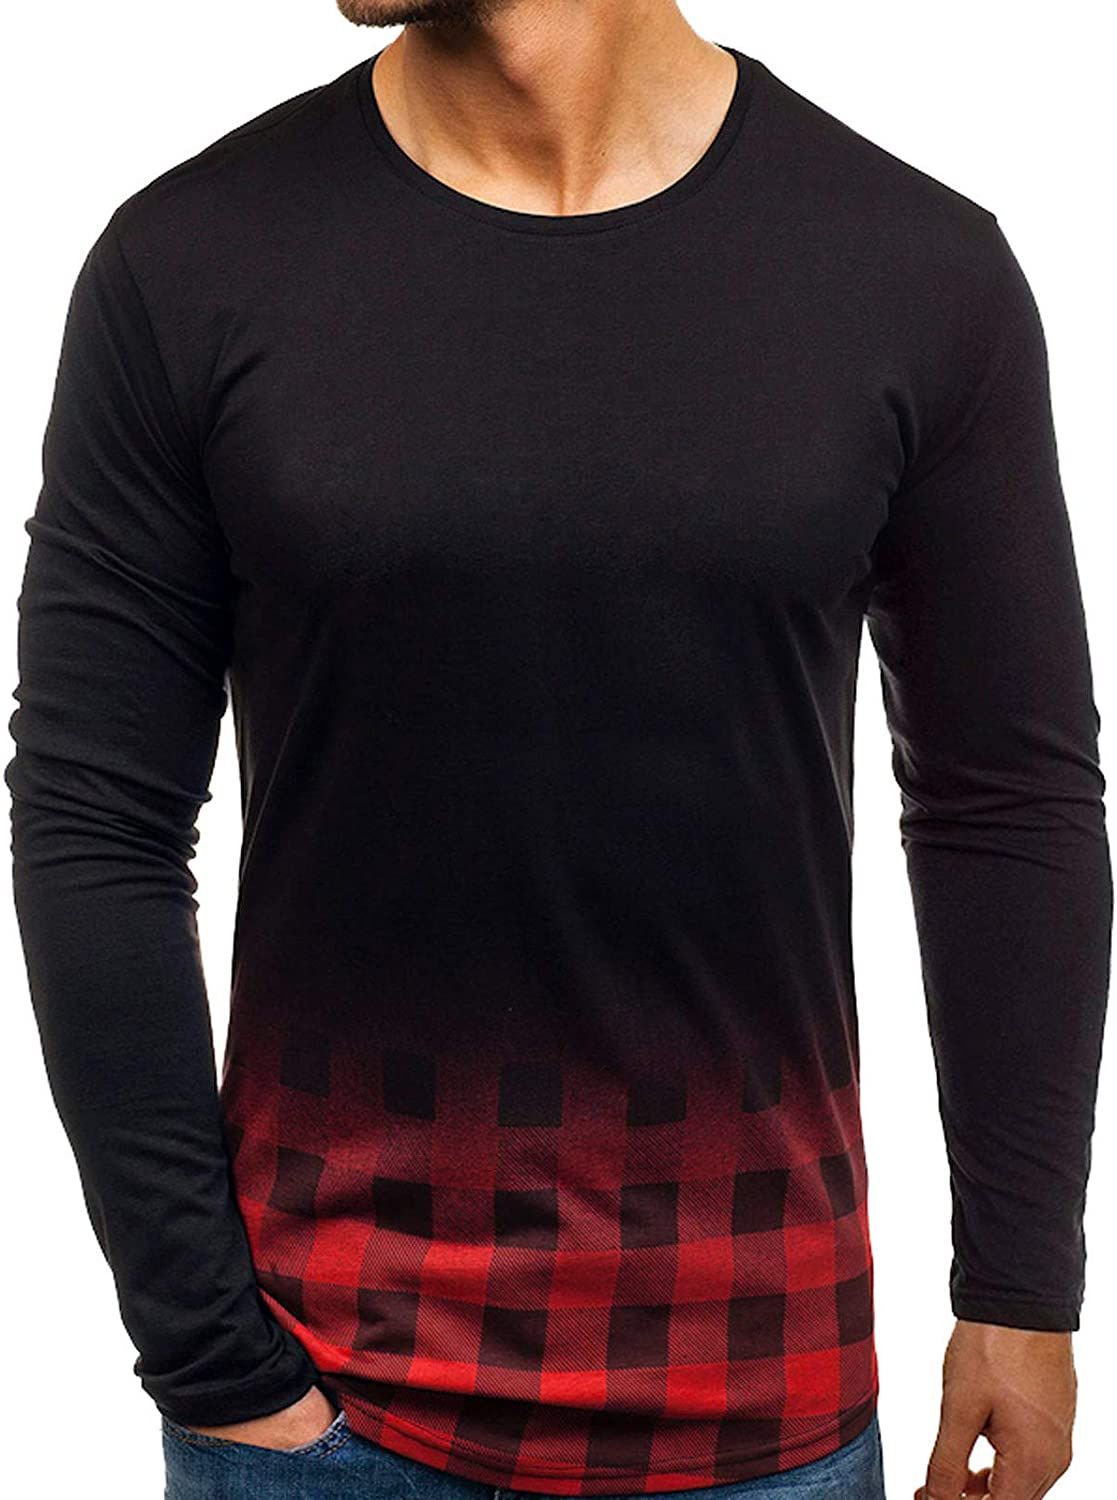 Mens Long-Sleeve Shirt Loose Camouflage Color Block Tops O Neck Casual Jumper Soft Lounge Tops